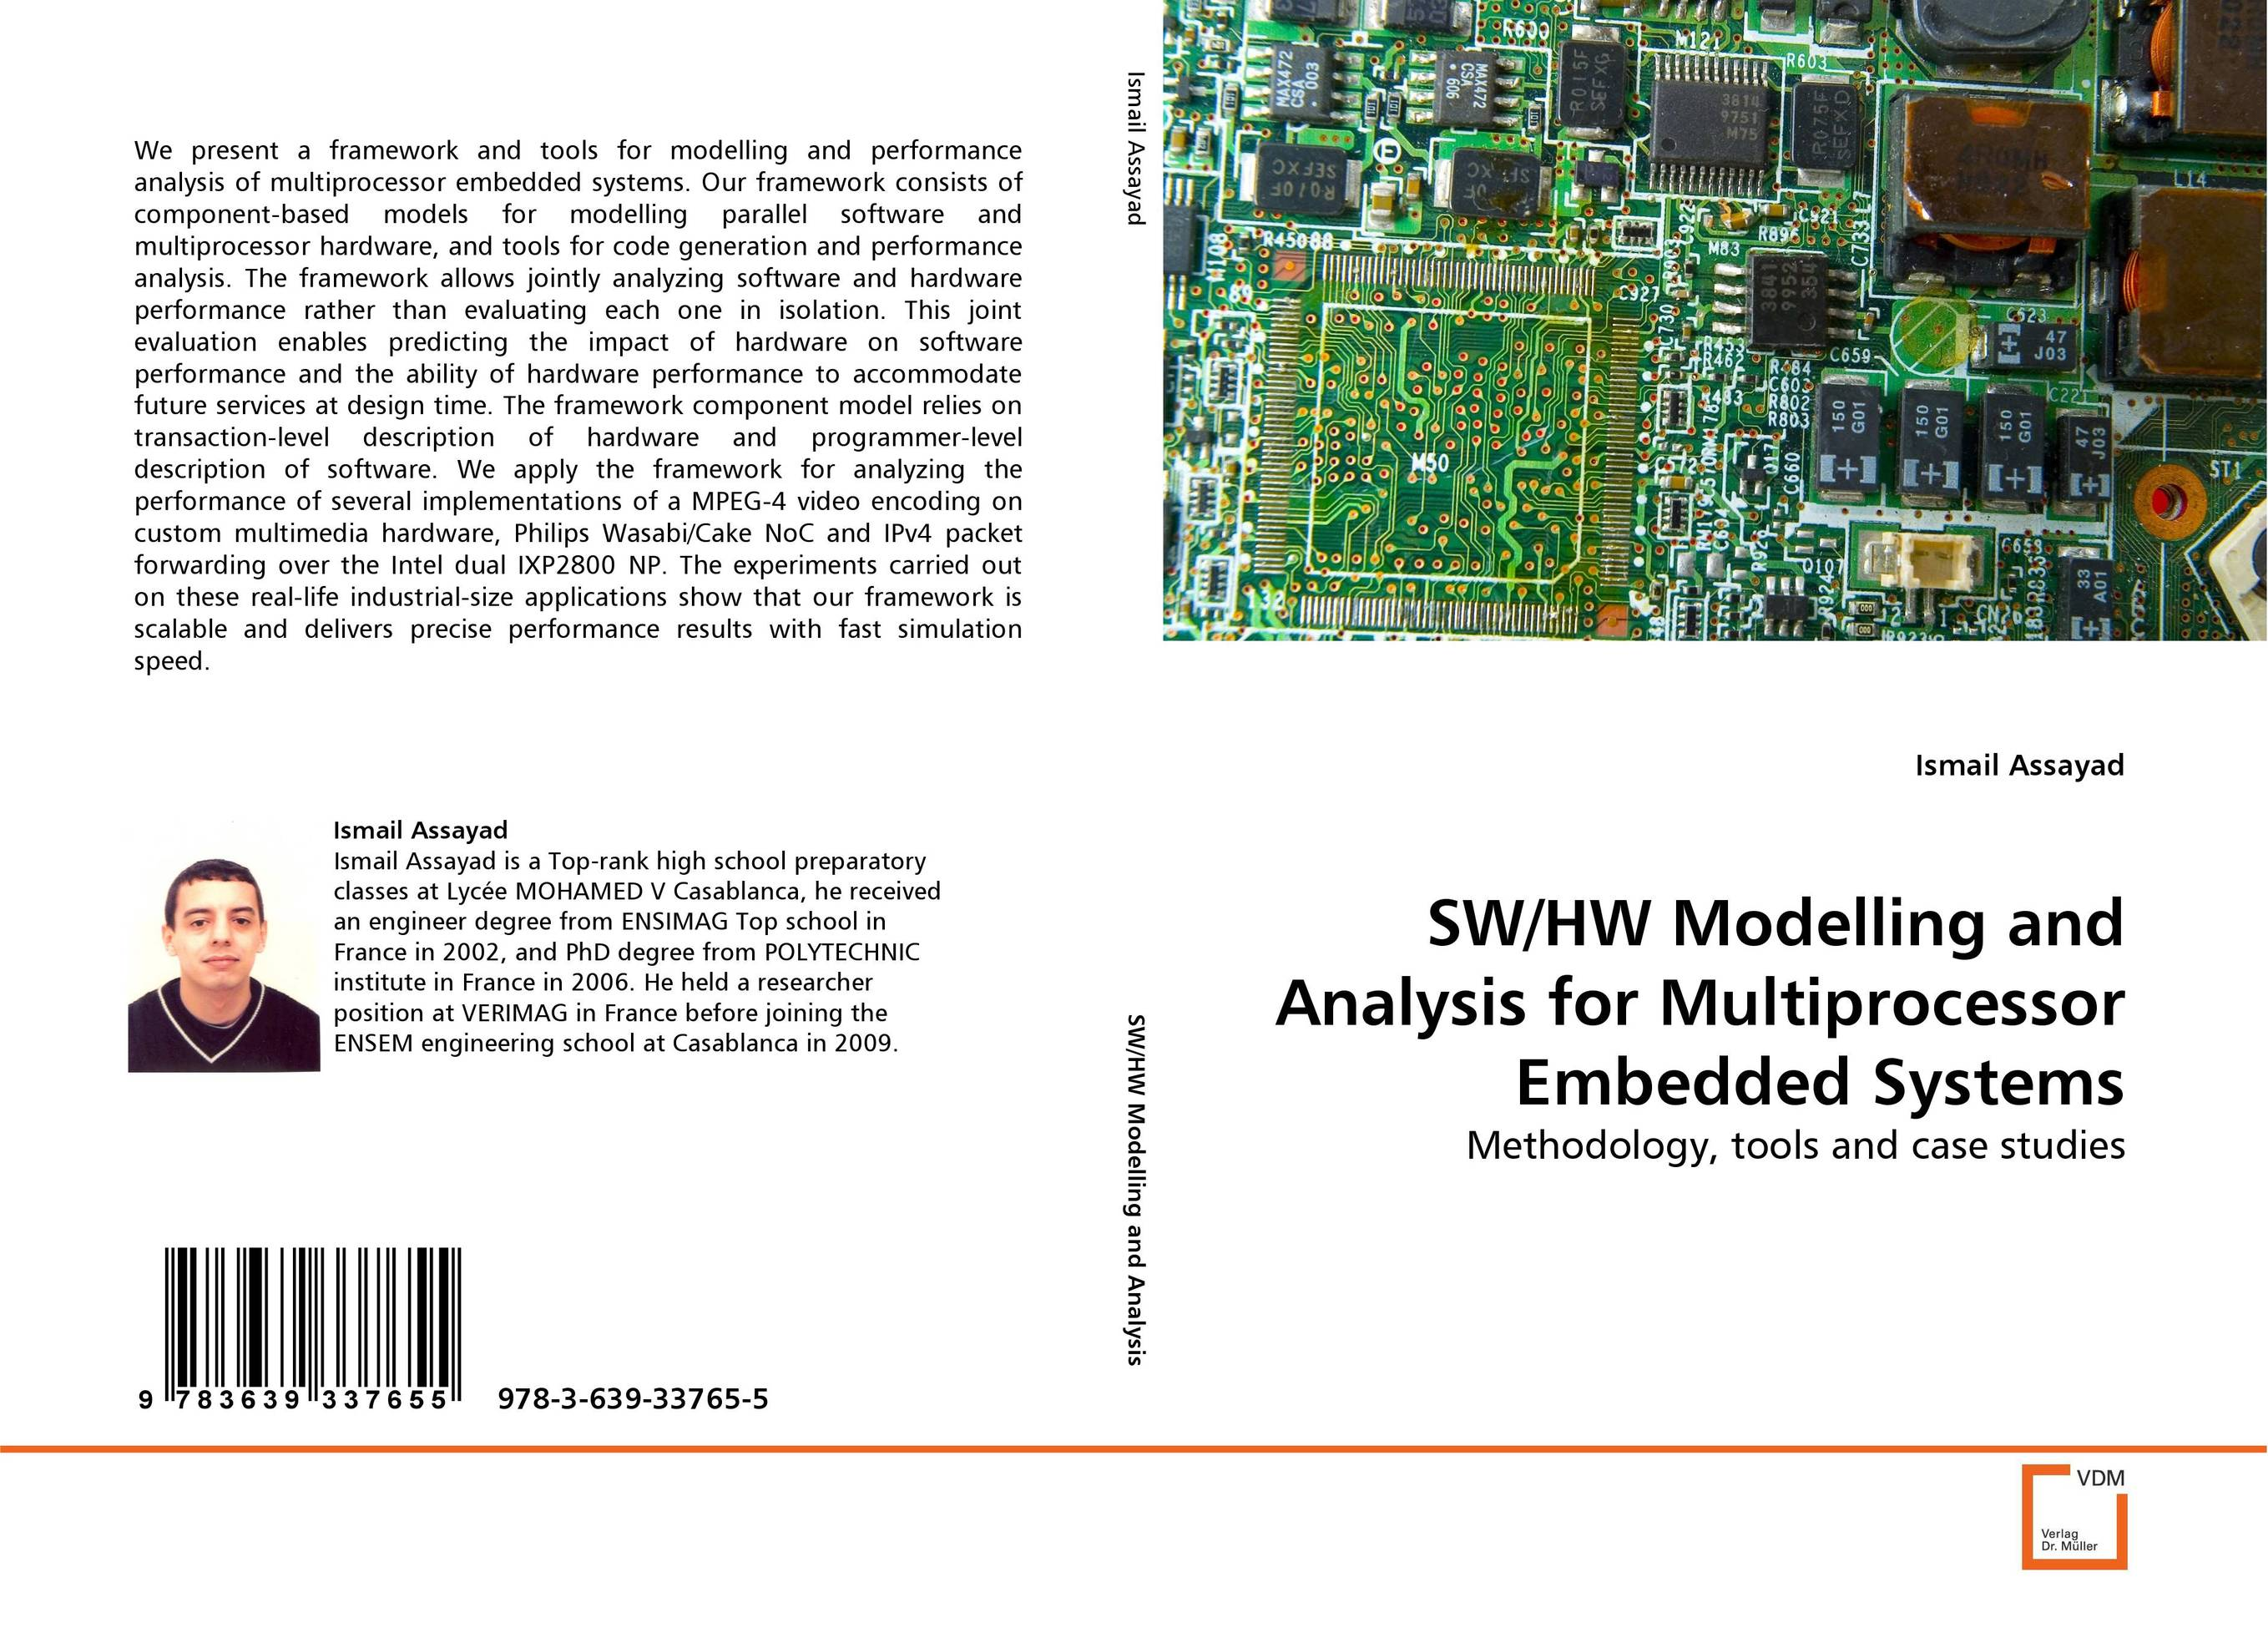 SW/HW Modelling and Analysis for Multiprocessor Embedded Systems predicting performance